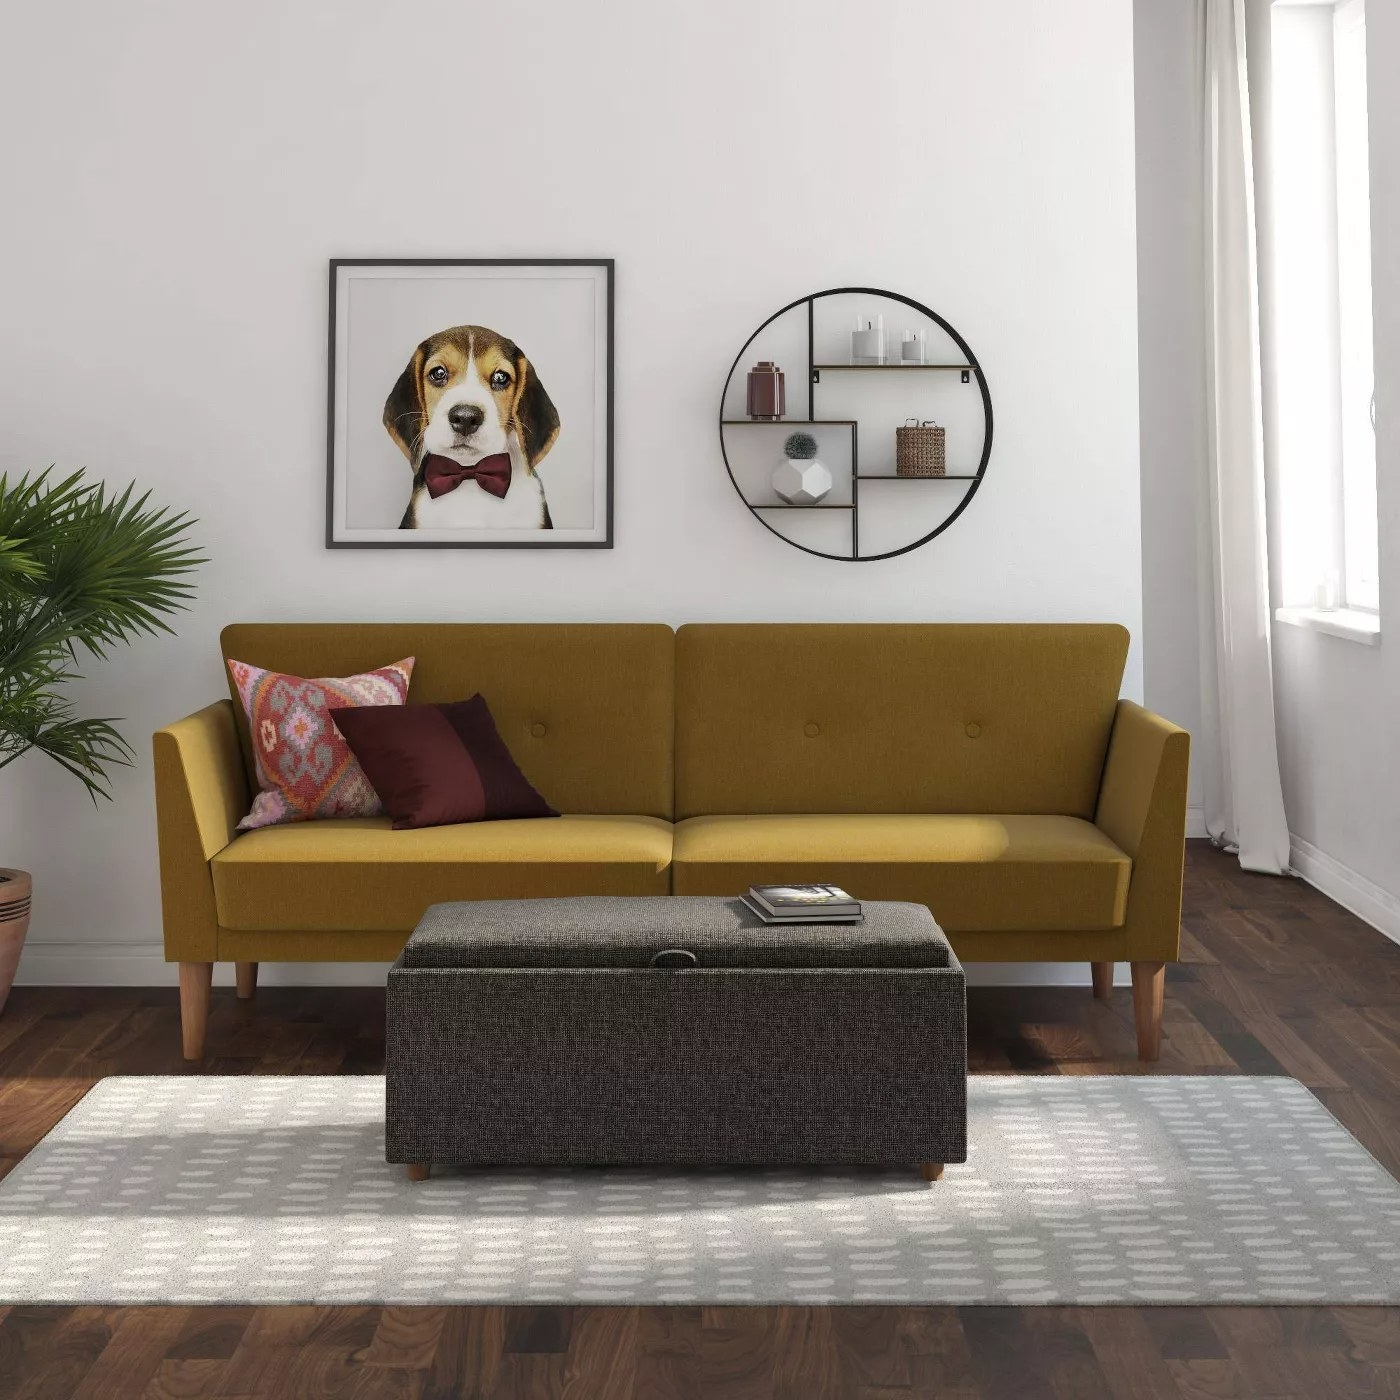 The futon placed in a living room